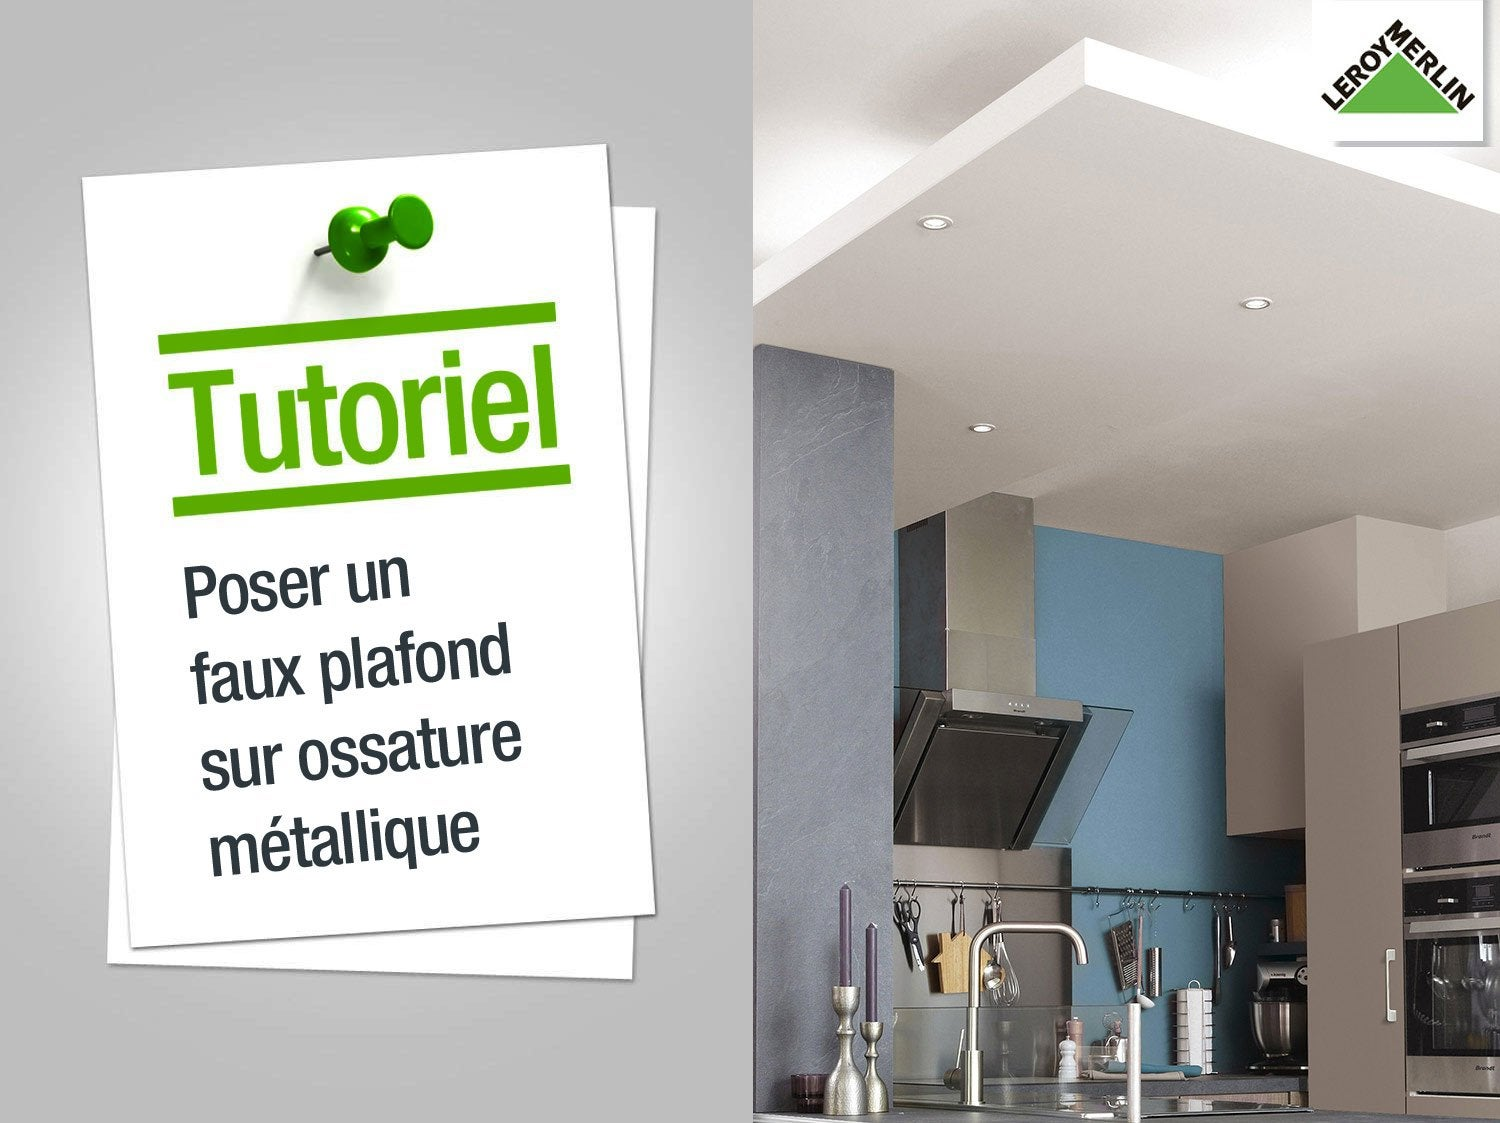 comment monter un faux plafond 28 images installer un On comment monter un faux plafond